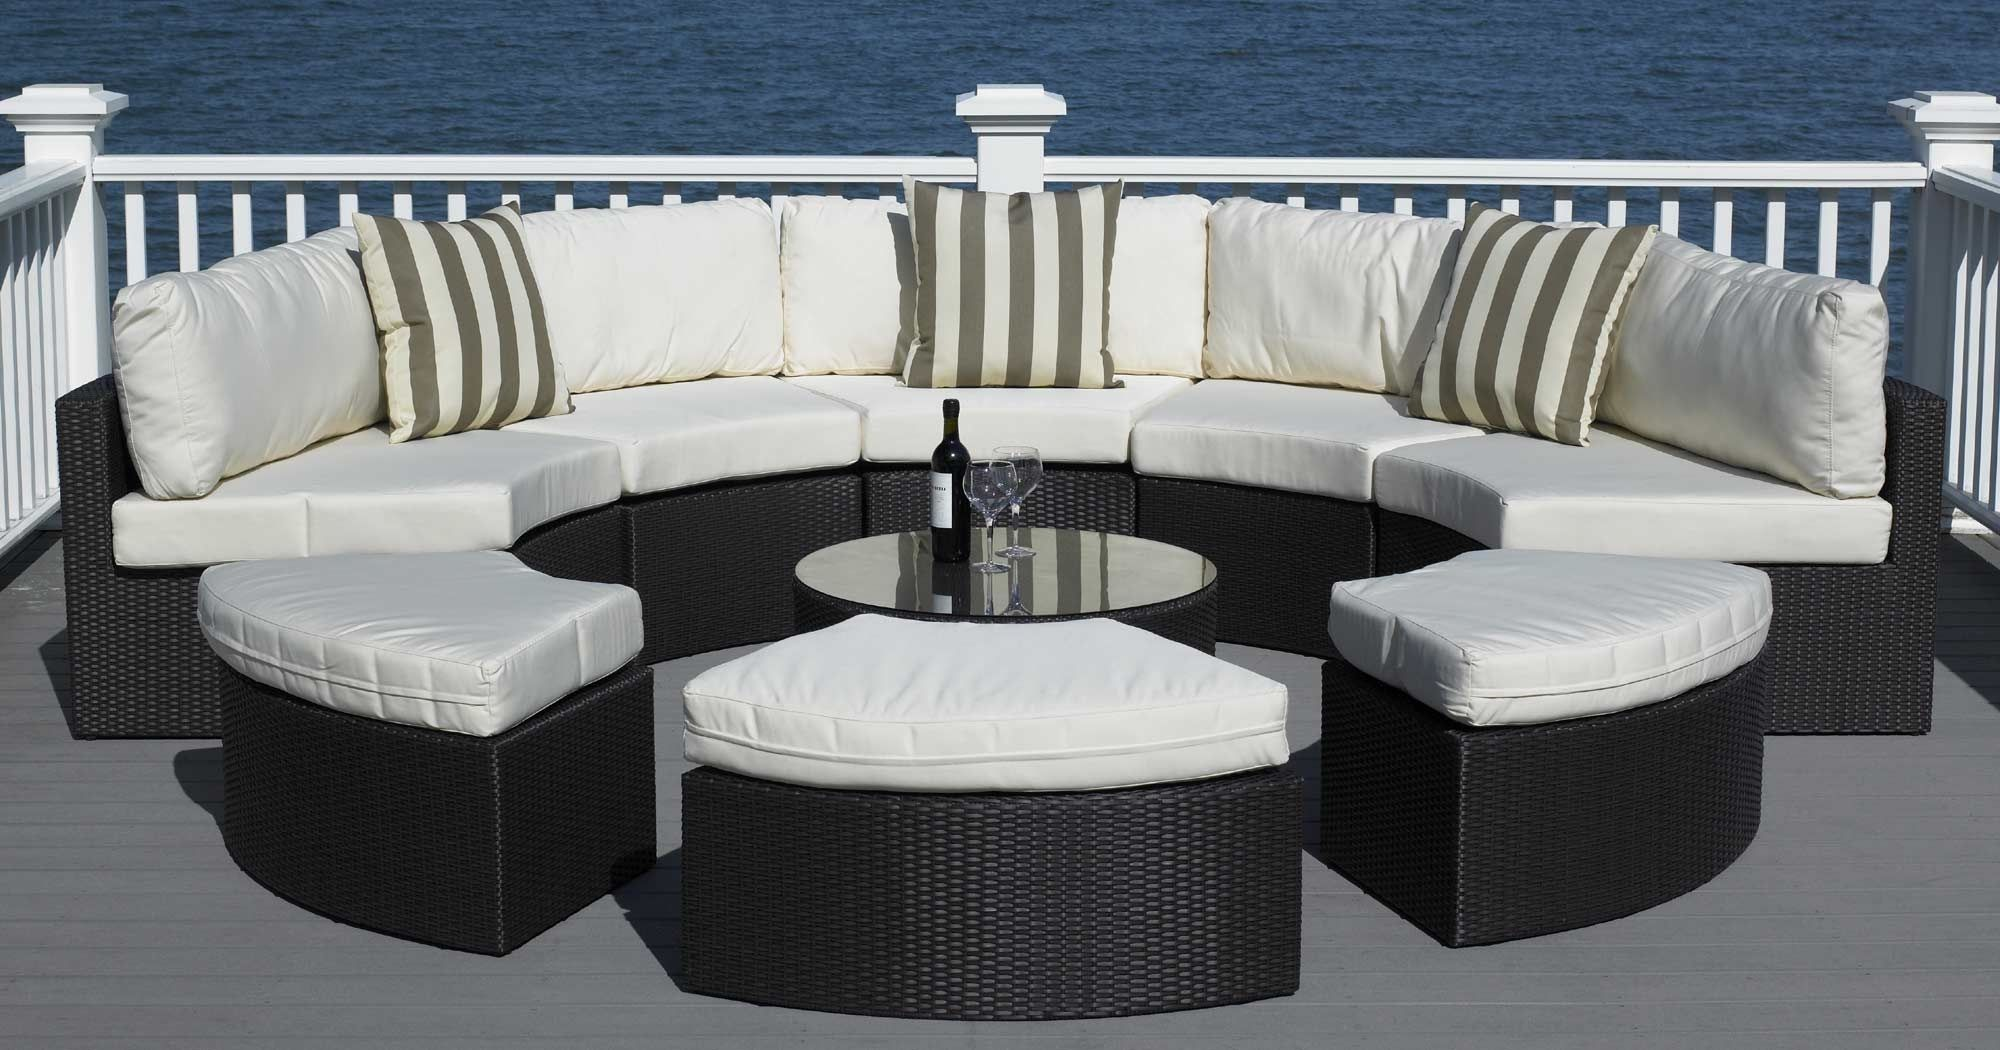 Nice Trend Round Patio Furniture 37 With Additional Home Design Ideas Check